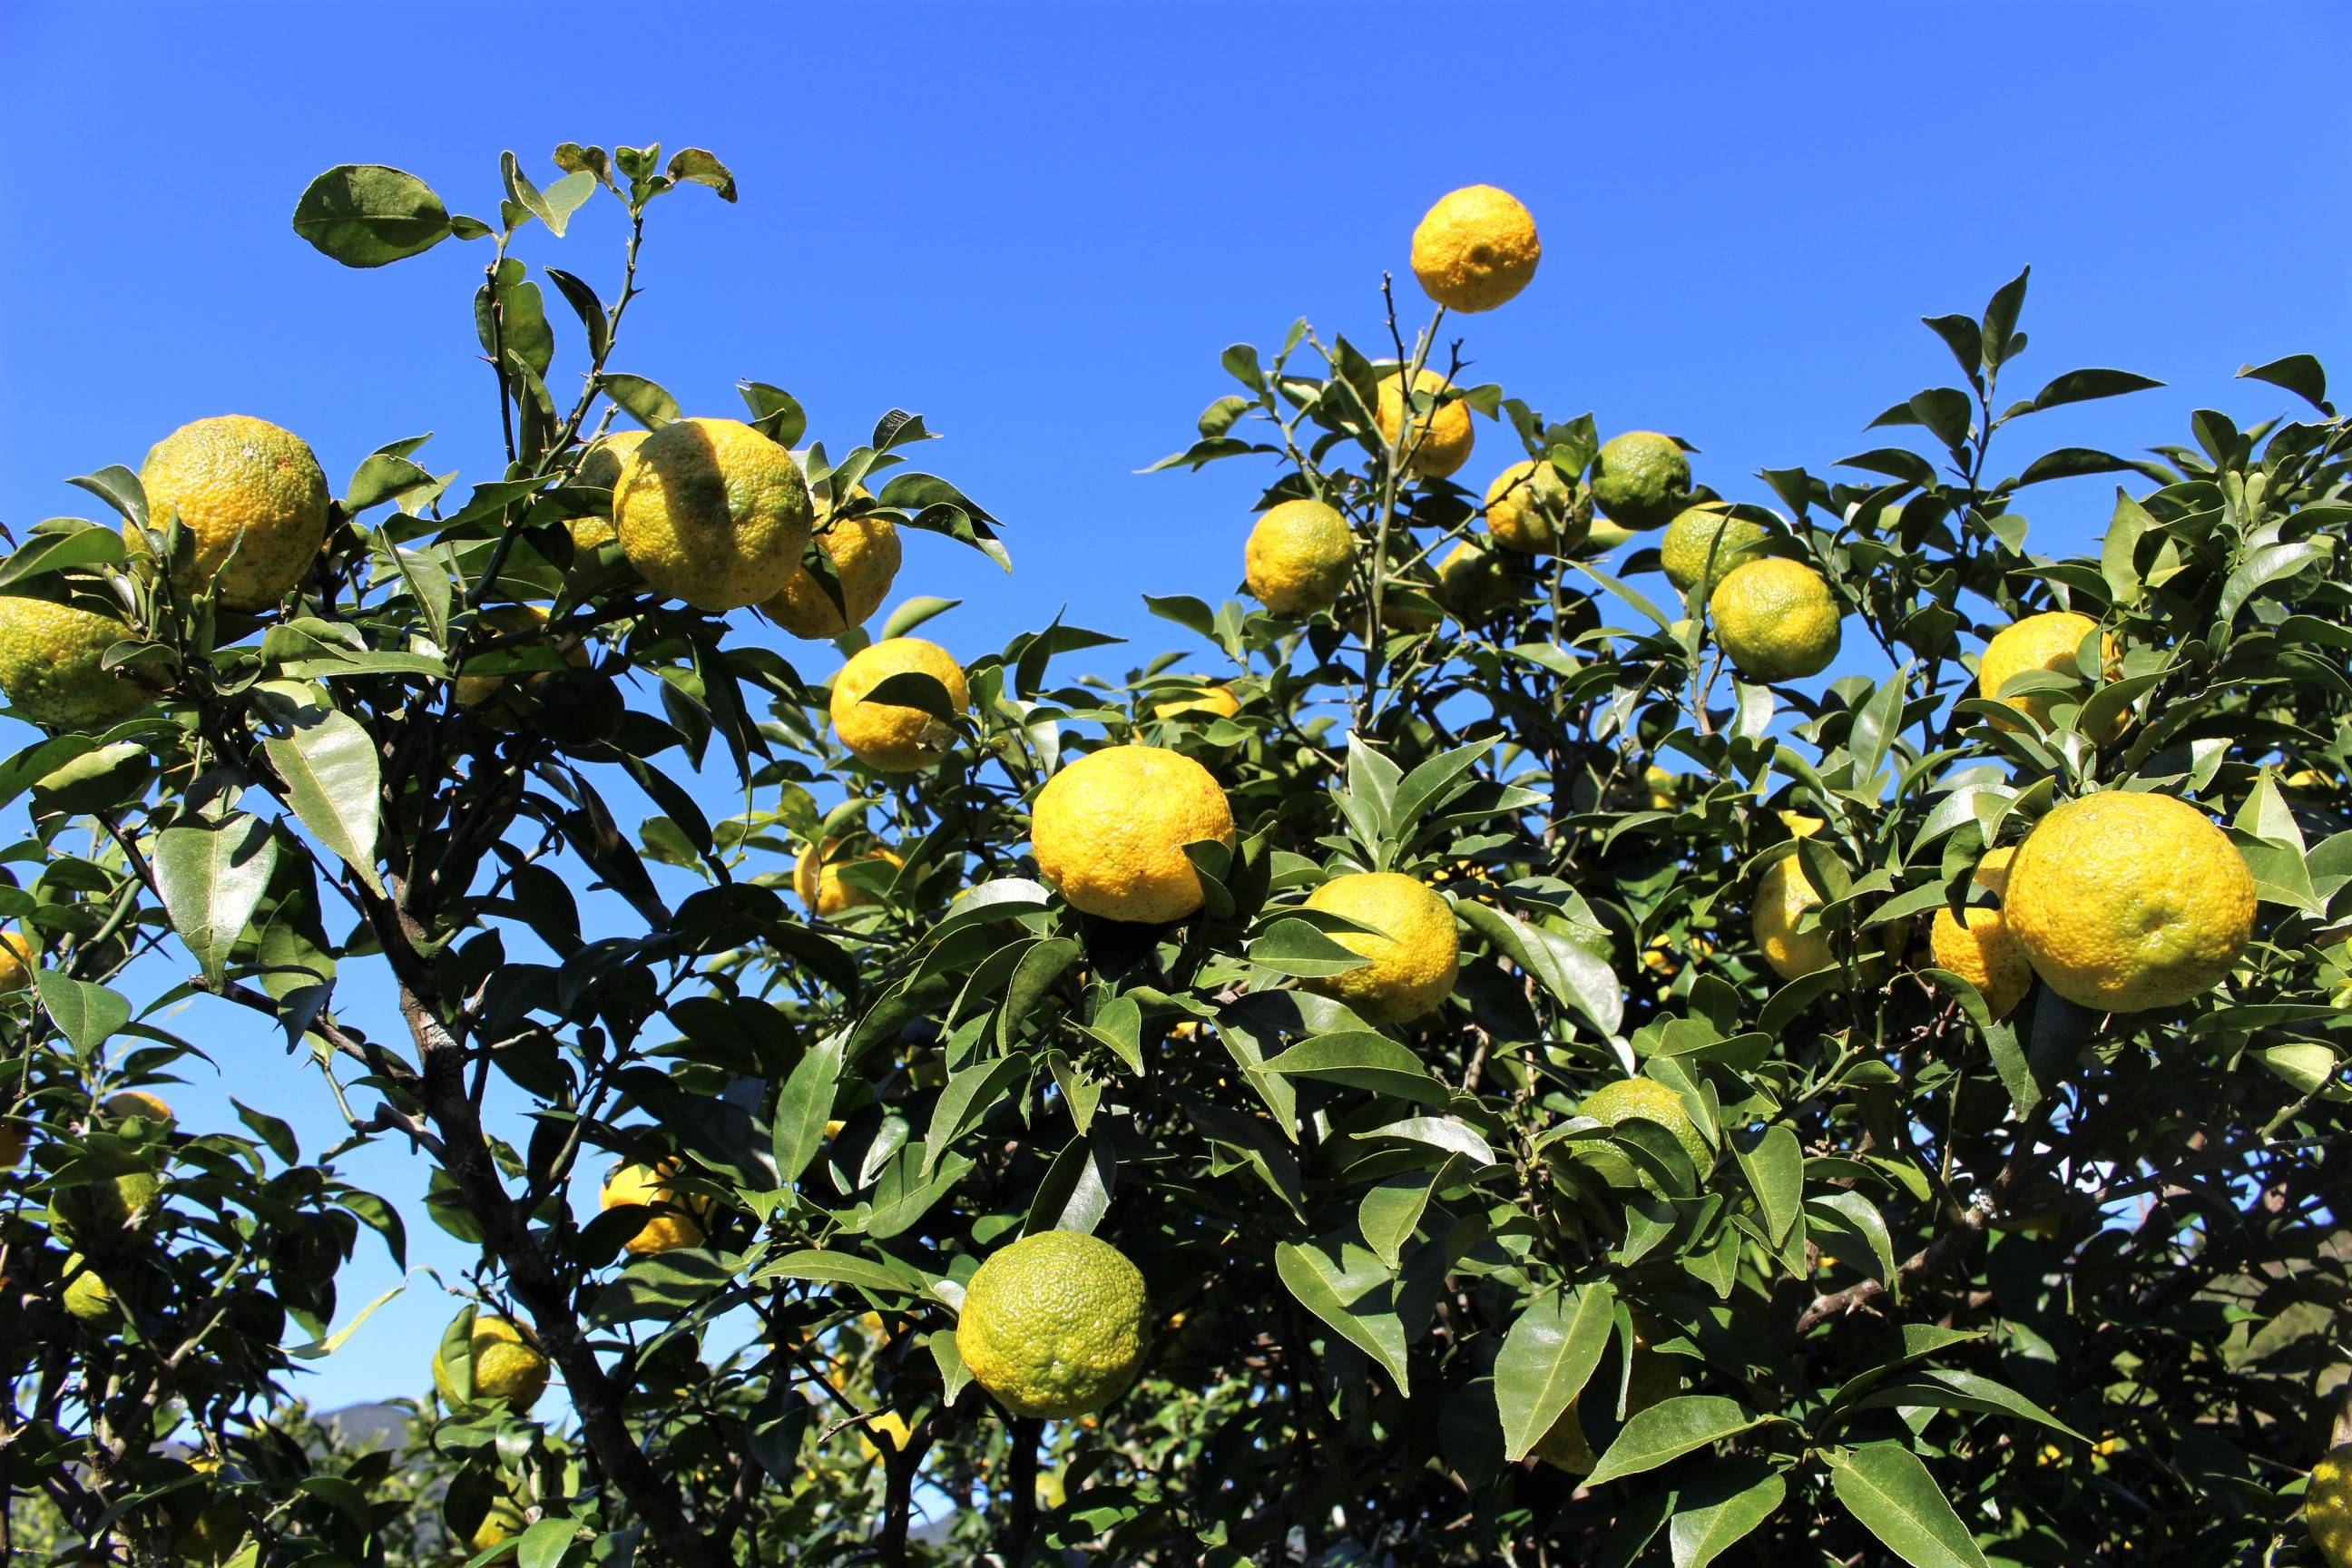 Deep roots: Violet Pacileo's family land has 100 yuzu citrus trees planted by her grandparents, which she now tends to, selling the fruit. | CHIARA TERZUOLO